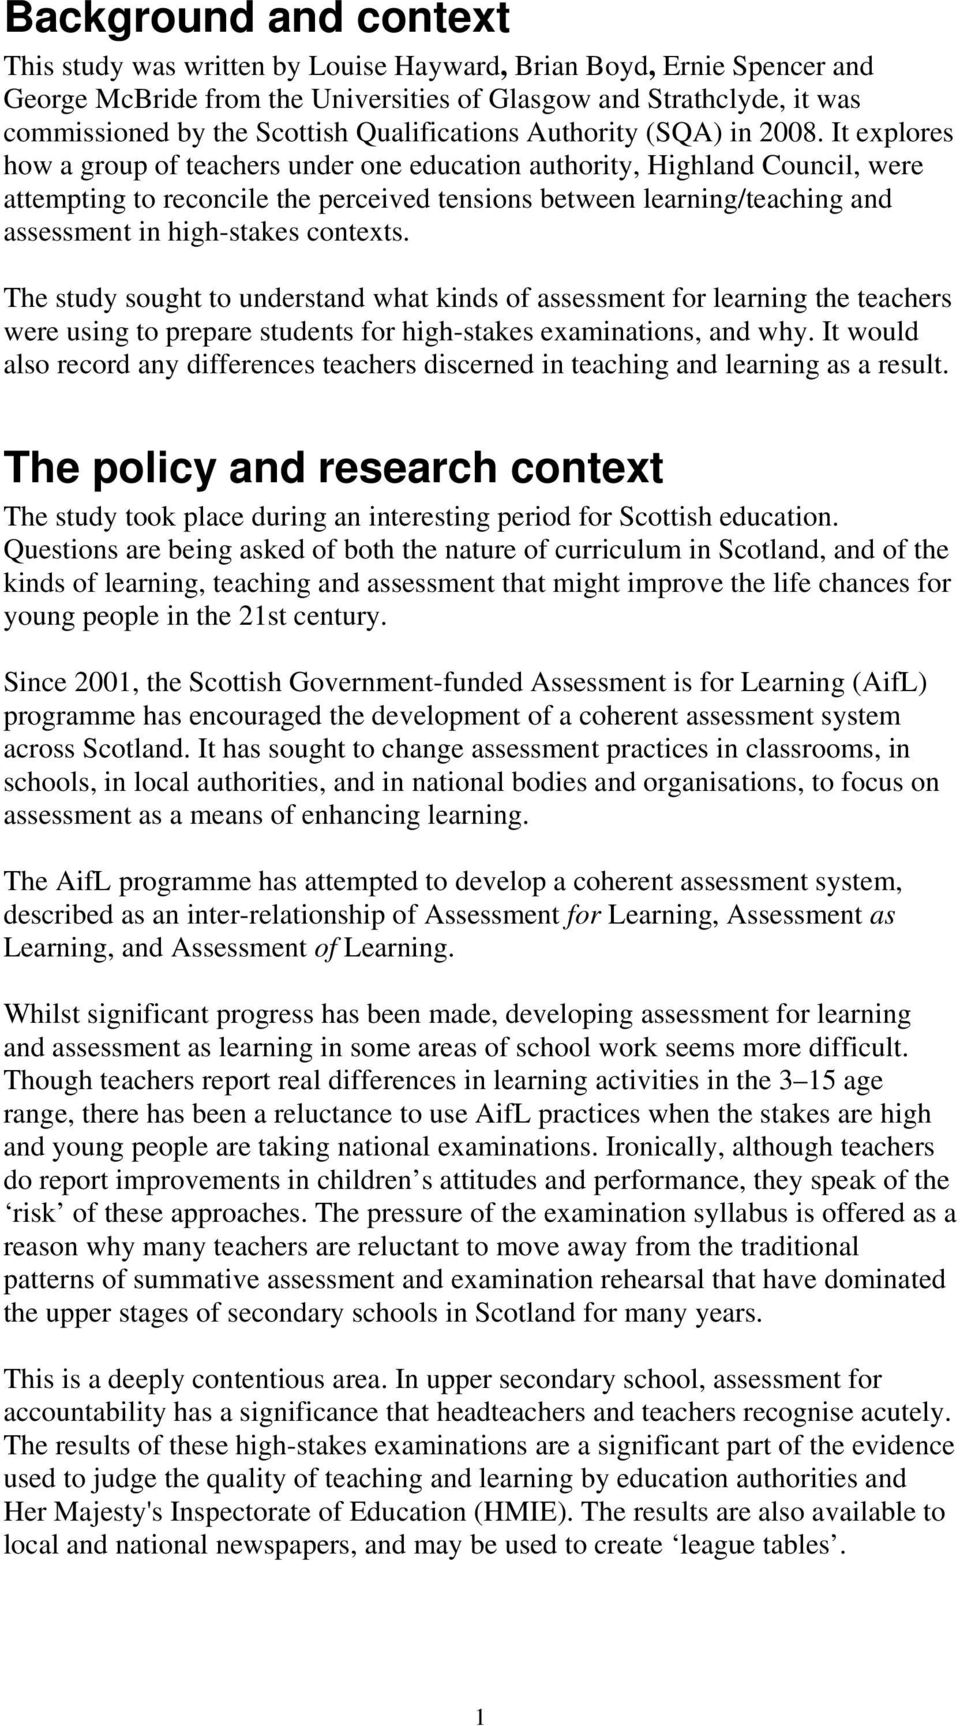 It explores how a group of teachers under one education authority, Highland Council, were attempting to reconcile the perceived tensions between learning/teaching and assessment in high-stakes